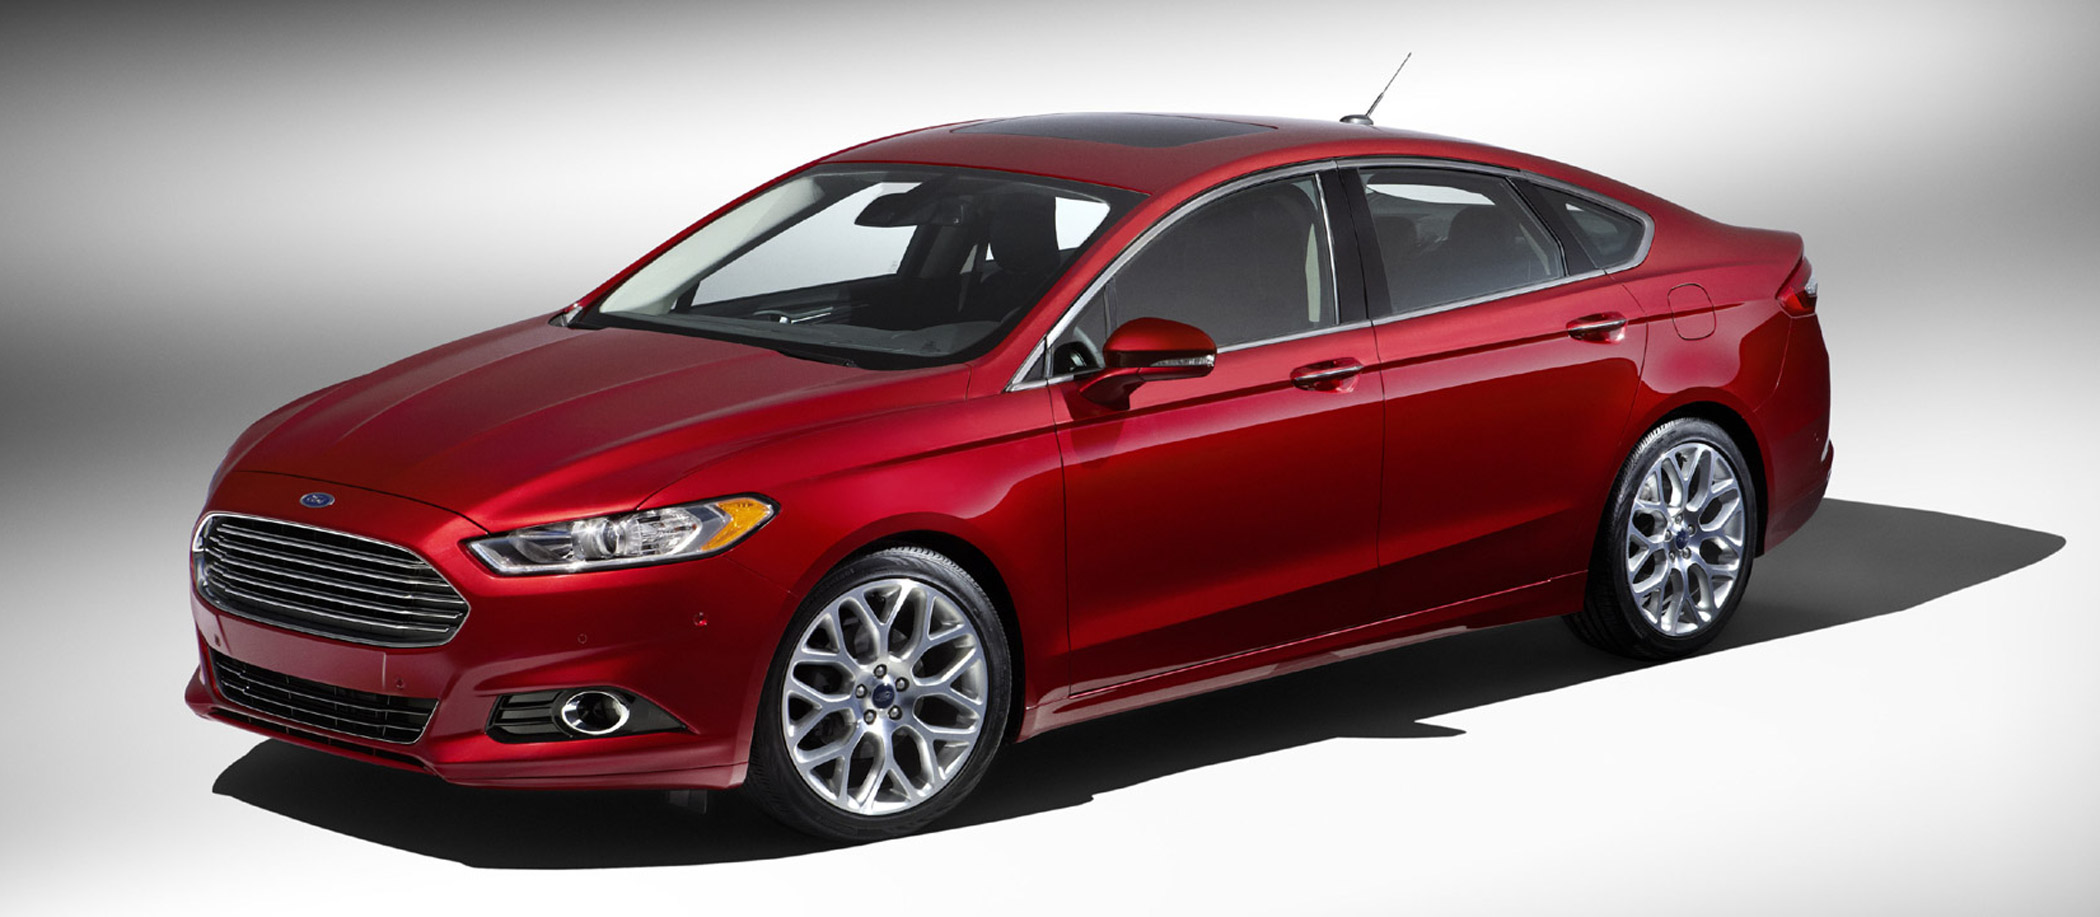 2013 ford fusion unveiled in detroit our auto expert for Ford motor company vision